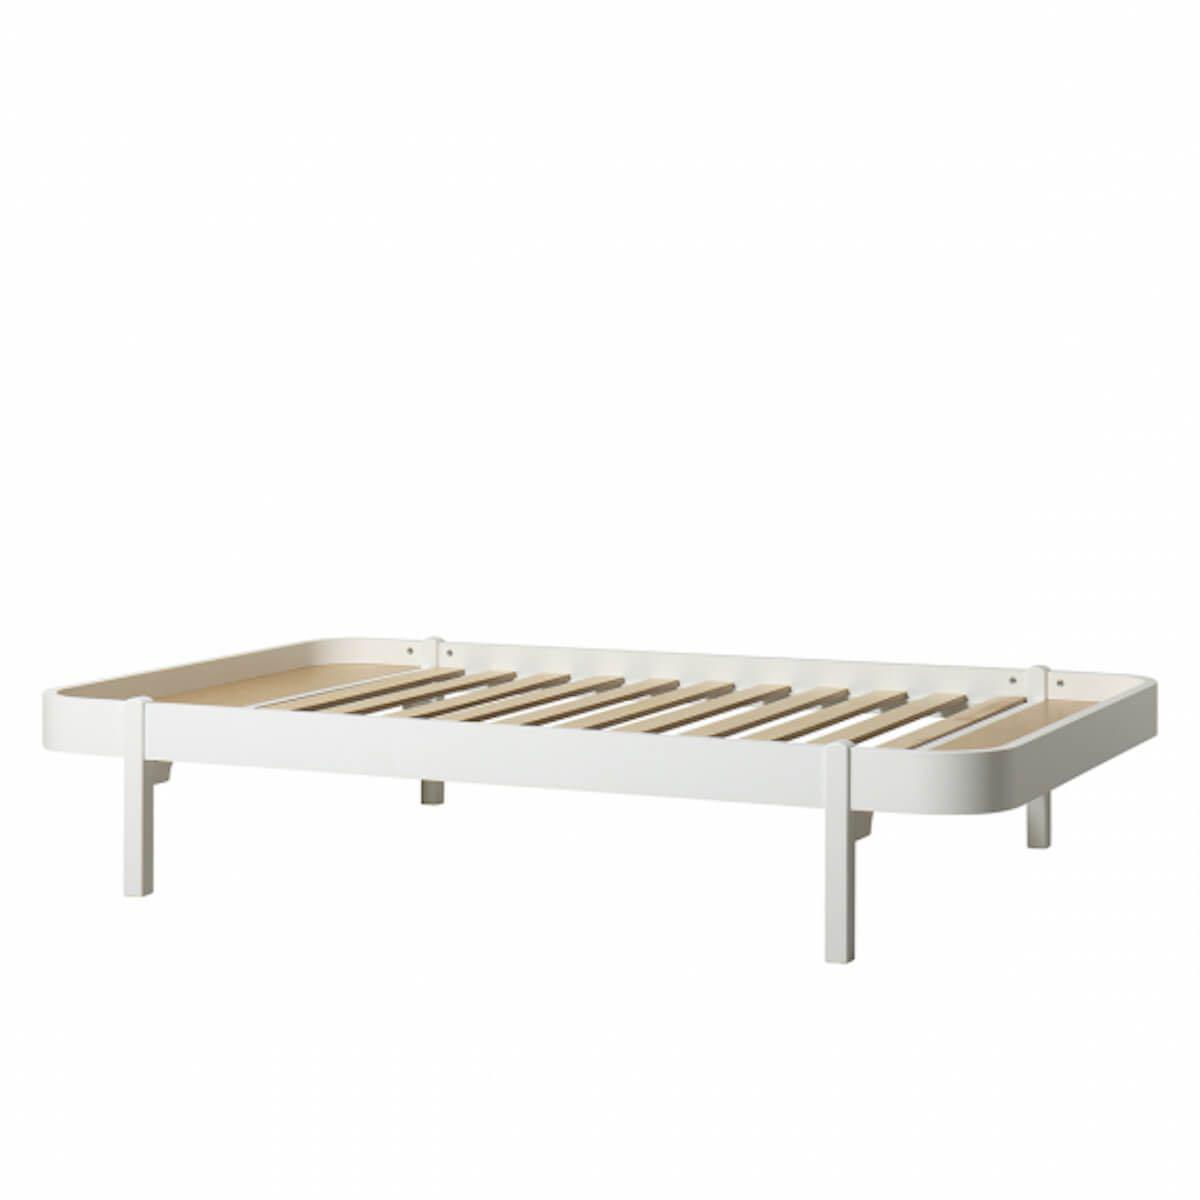 Lit 120x200cm WOOD LOUNGER Oliver Furniture blanc